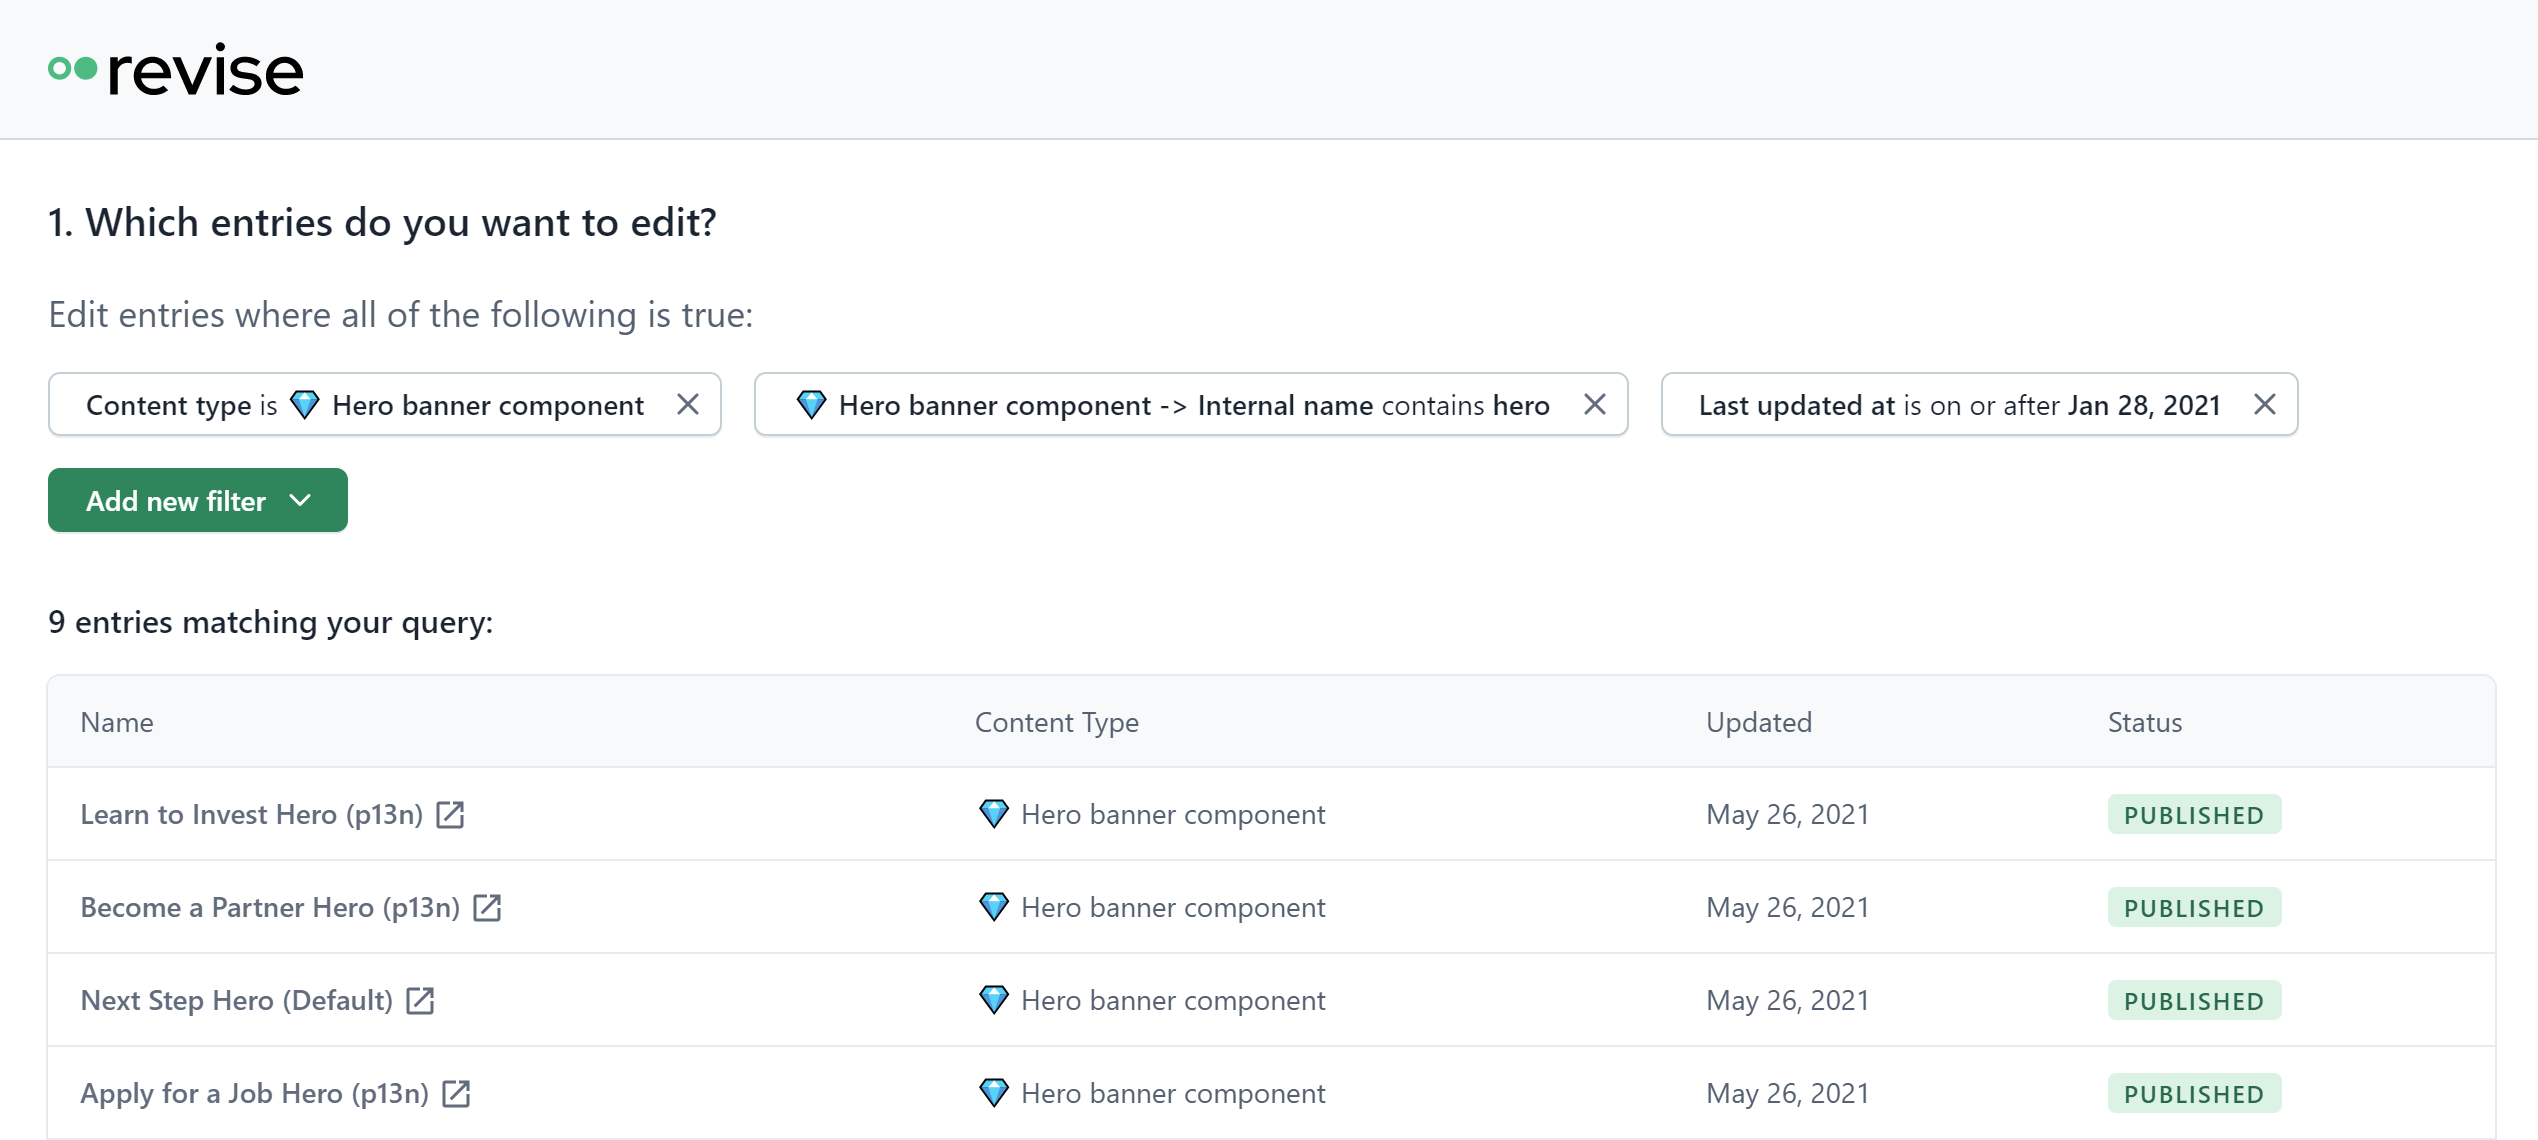 Revise supports granular filtering, find and edit exactly the content that you need